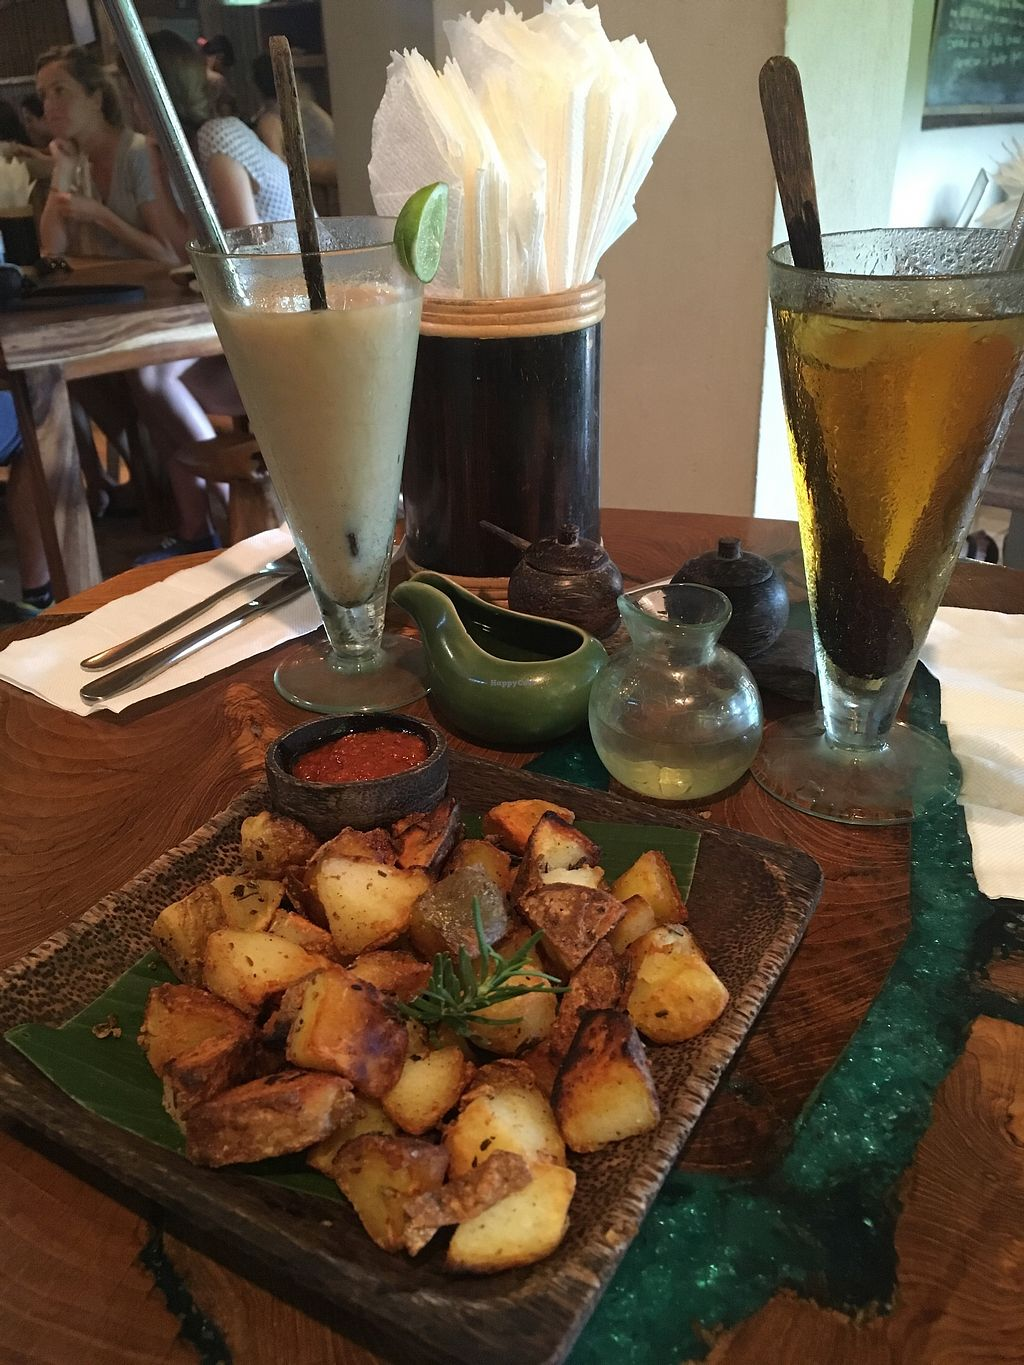 """Photo of Atman Nourish Kafe  by <a href=""""/members/profile/jojoinbrighton"""">jojoinbrighton</a> <br/>Rosemary potatoes <br/> August 15, 2017  - <a href='/contact/abuse/image/91940/292772'>Report</a>"""